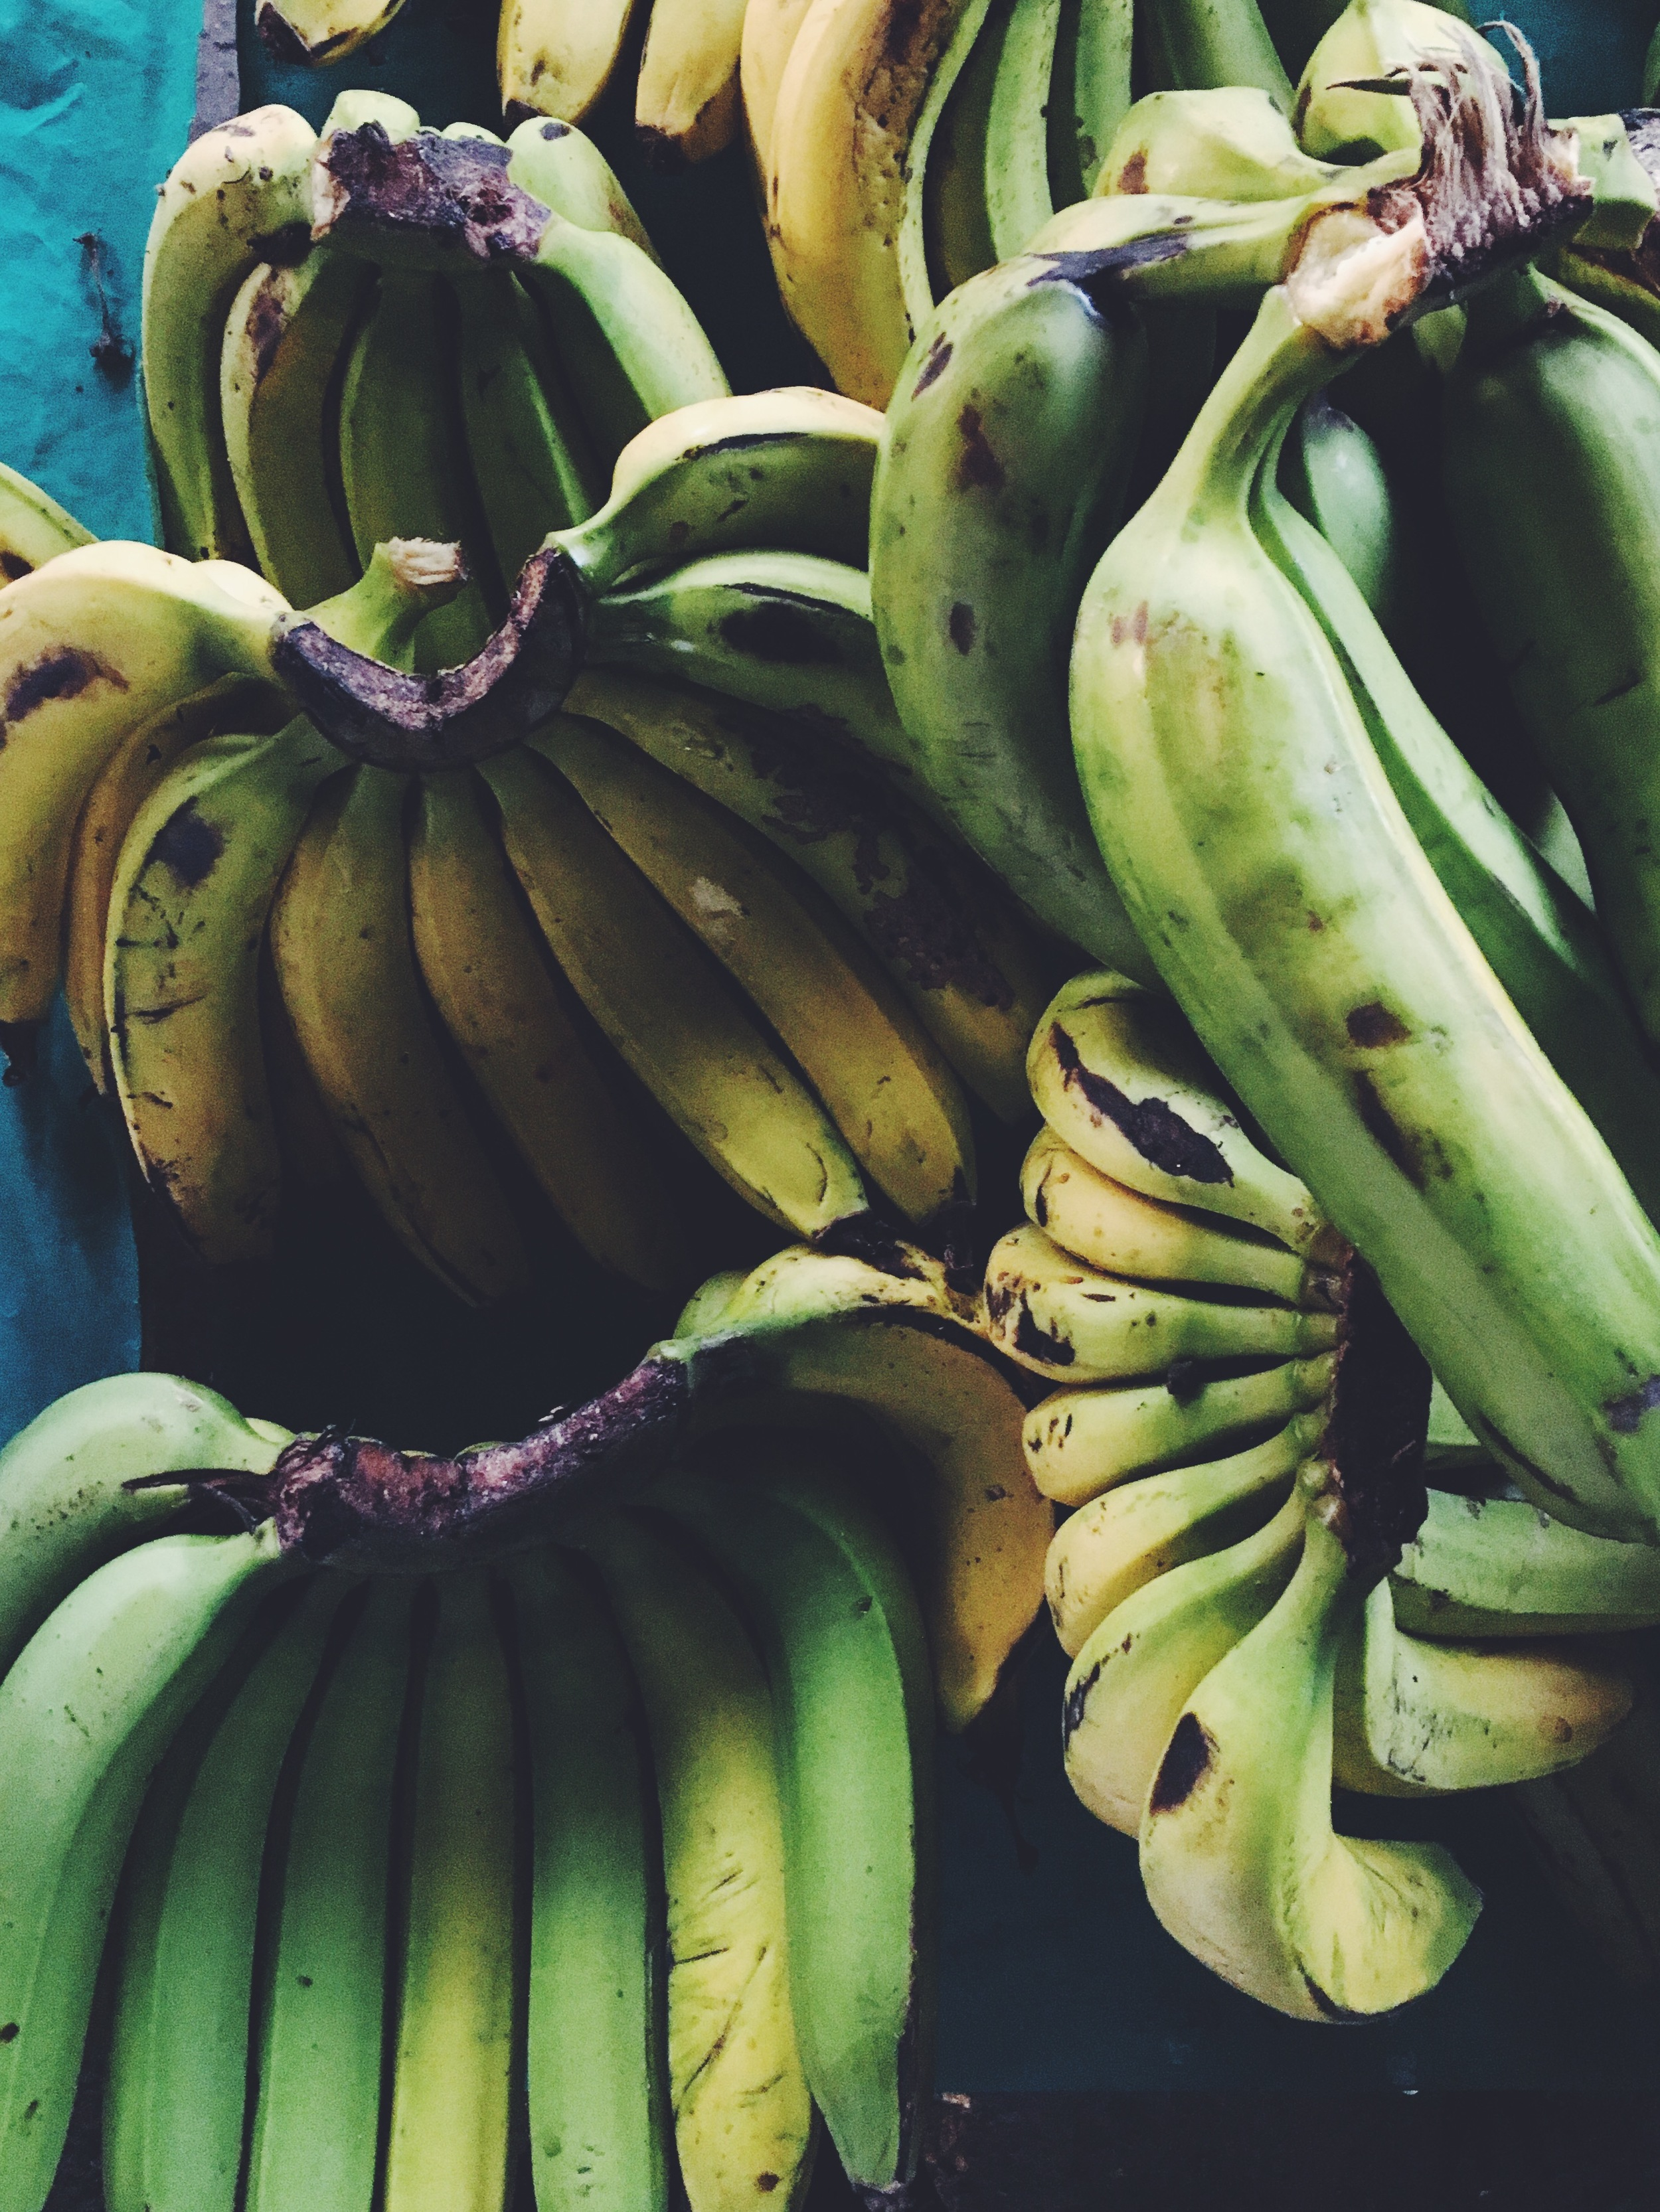 OBELO | Plantains